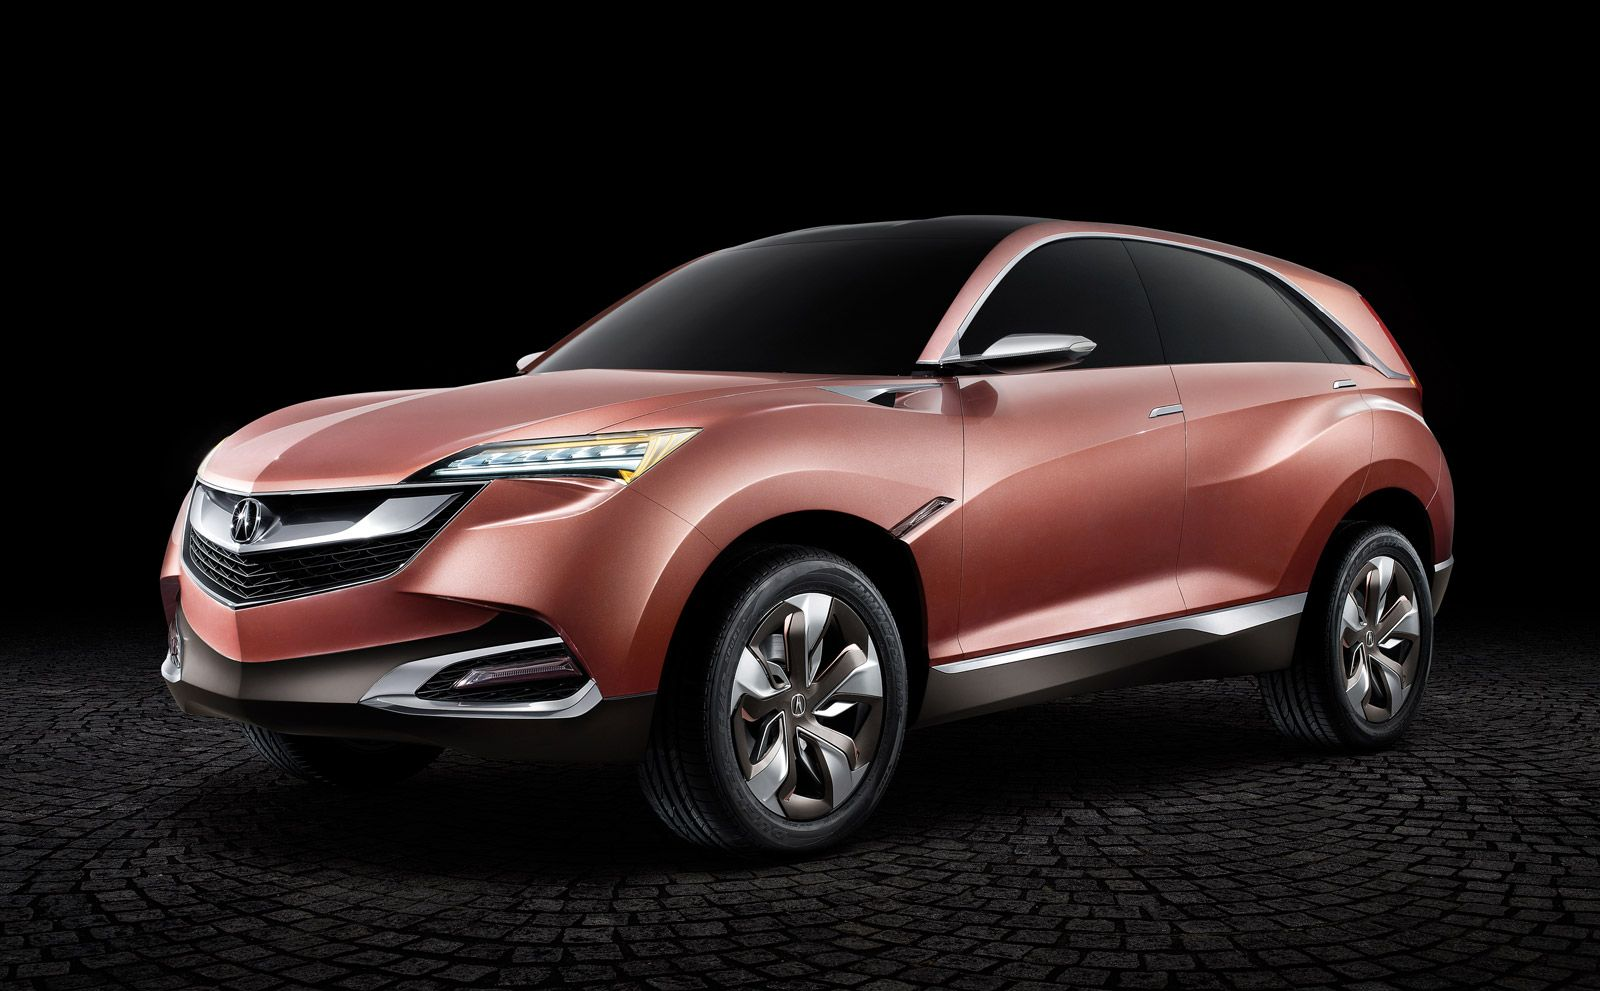 Acura considering honda vezel based compact crossover